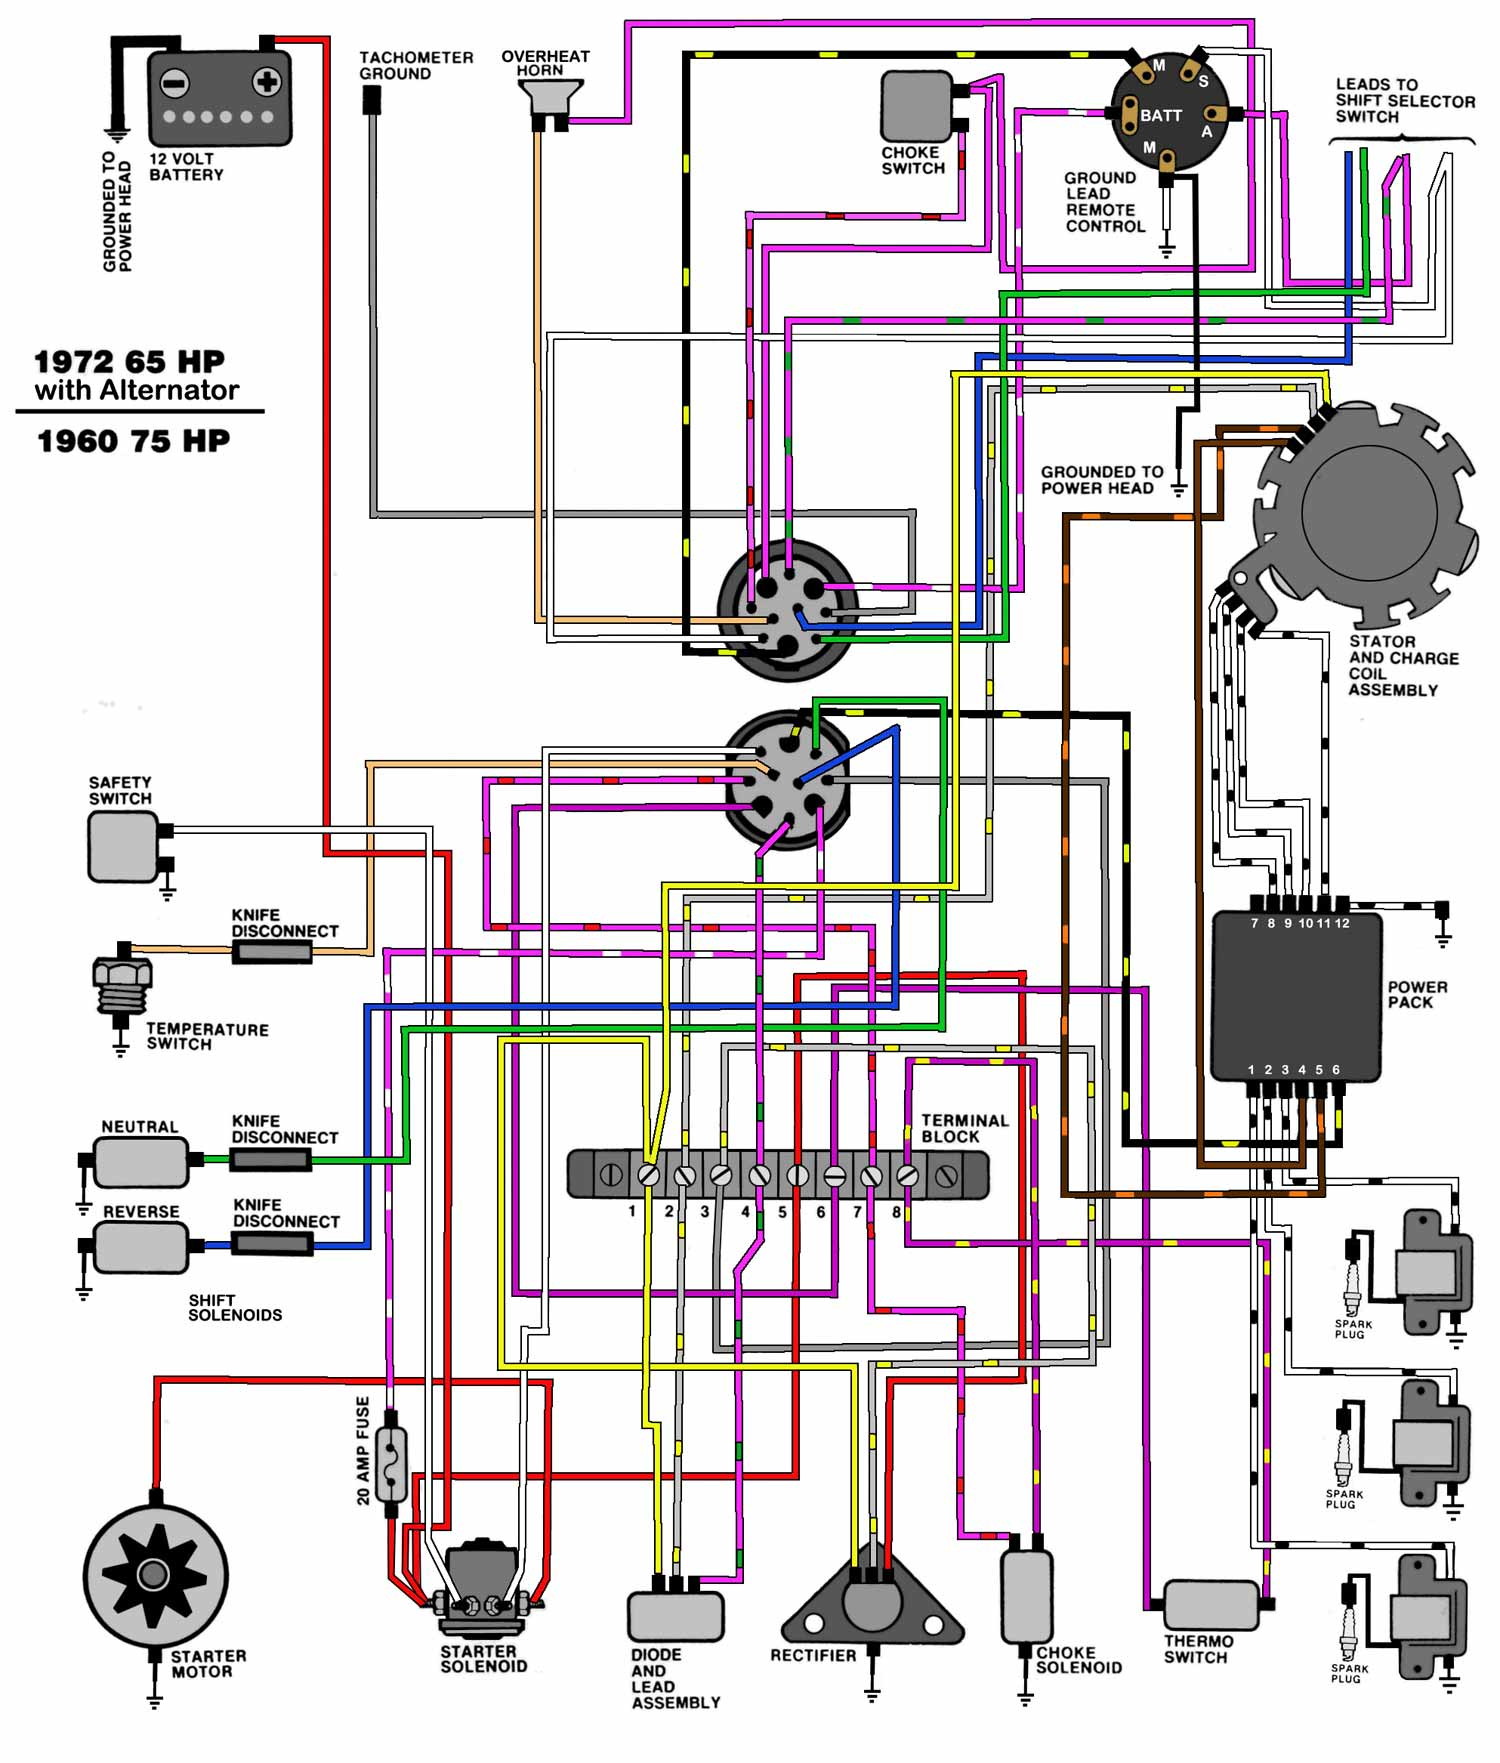 Omc Schematic Diagrams - wiring diagrams schematics